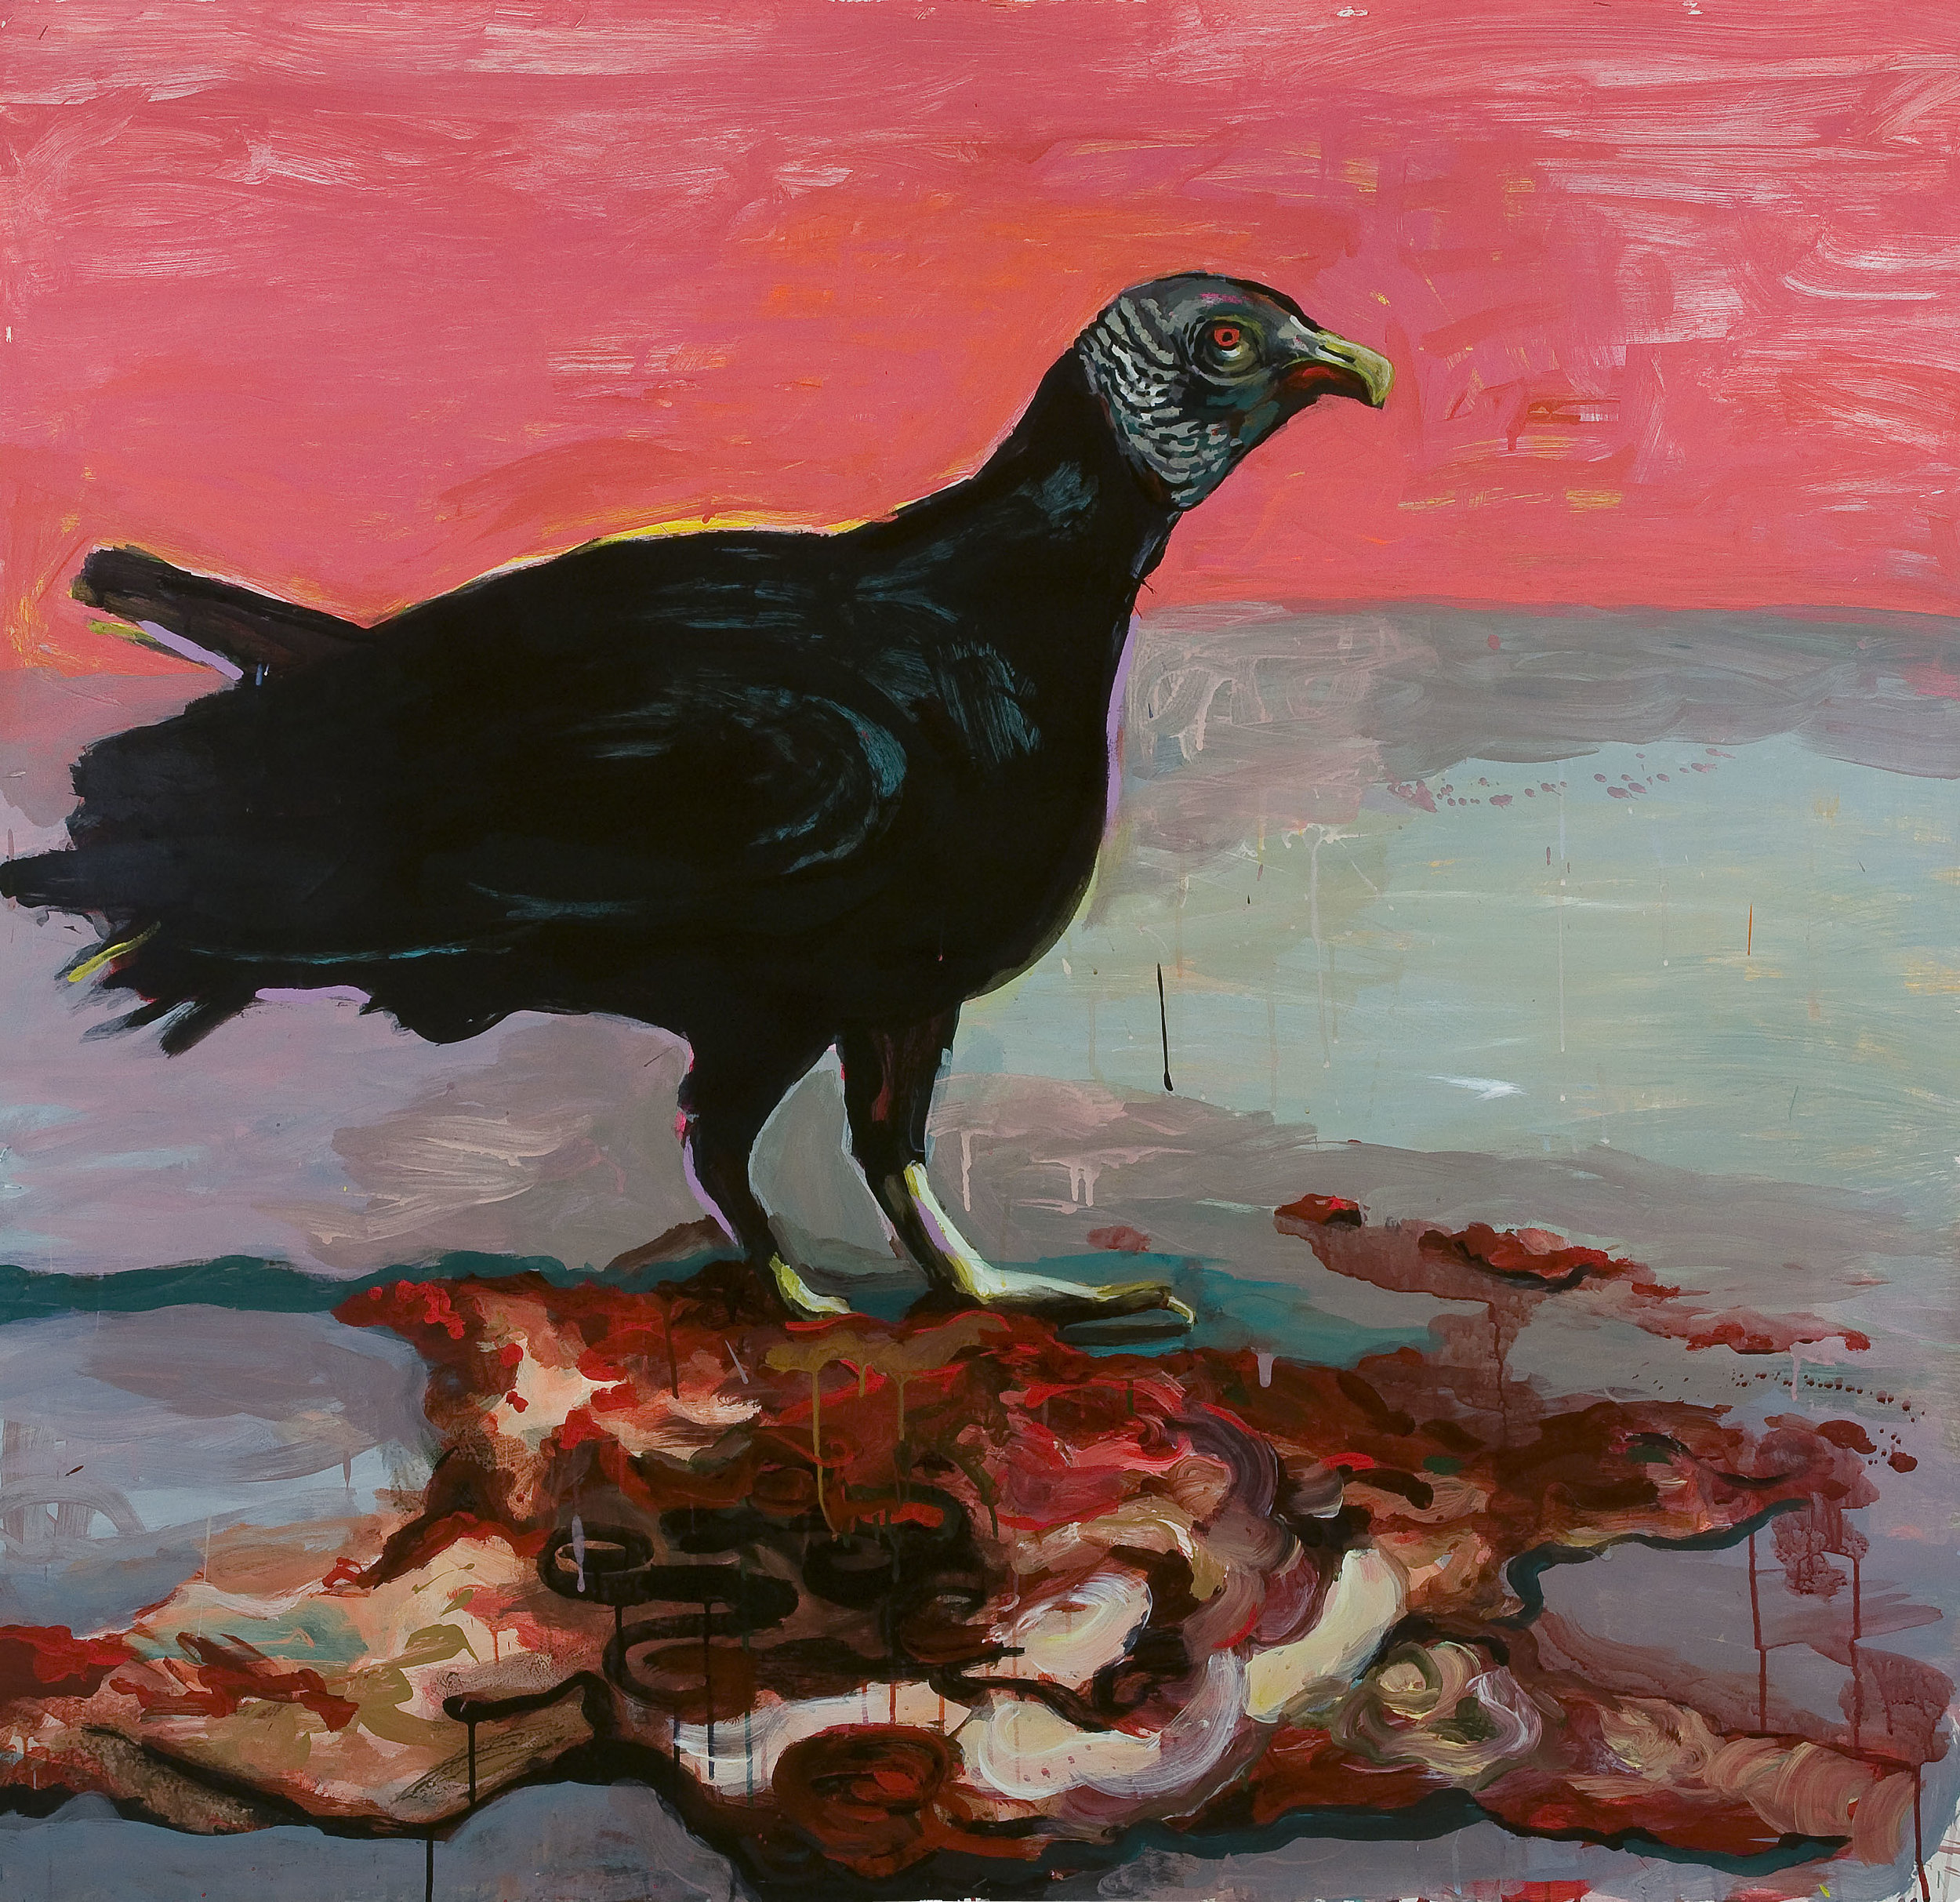 Vulture with Carcass , 2008, acrylic and ink on paper,54 x 51.5 inches